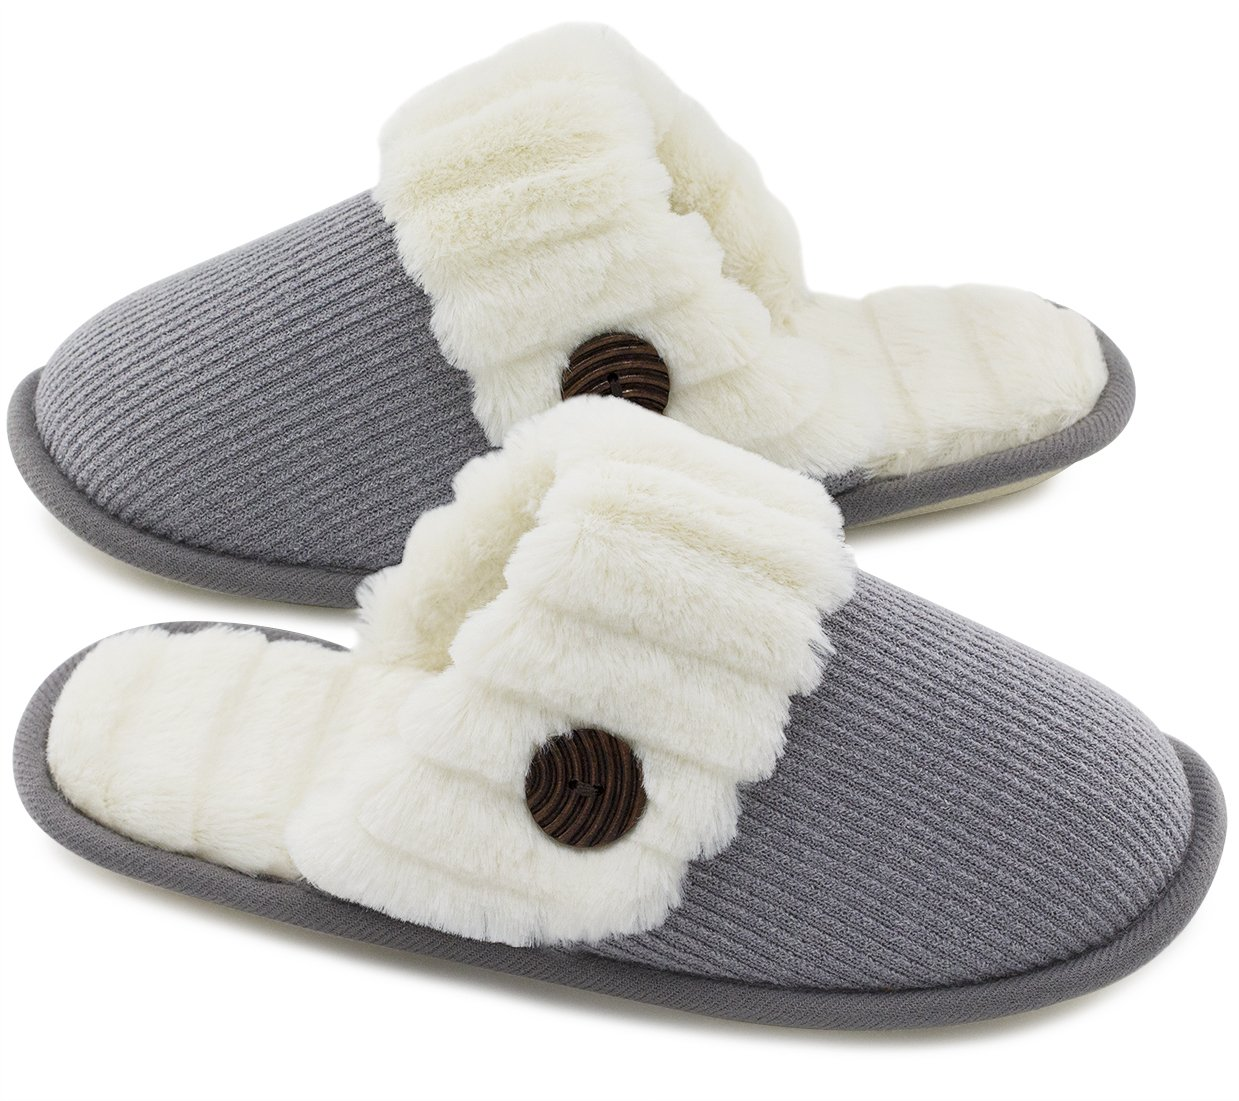 HomeTop Women's Cute Fuzzy Knitted Memory Foam Indoor House Slippers for Families Couples (39-40 (US Women's 9-10; Men's 7-8), Light Gray)